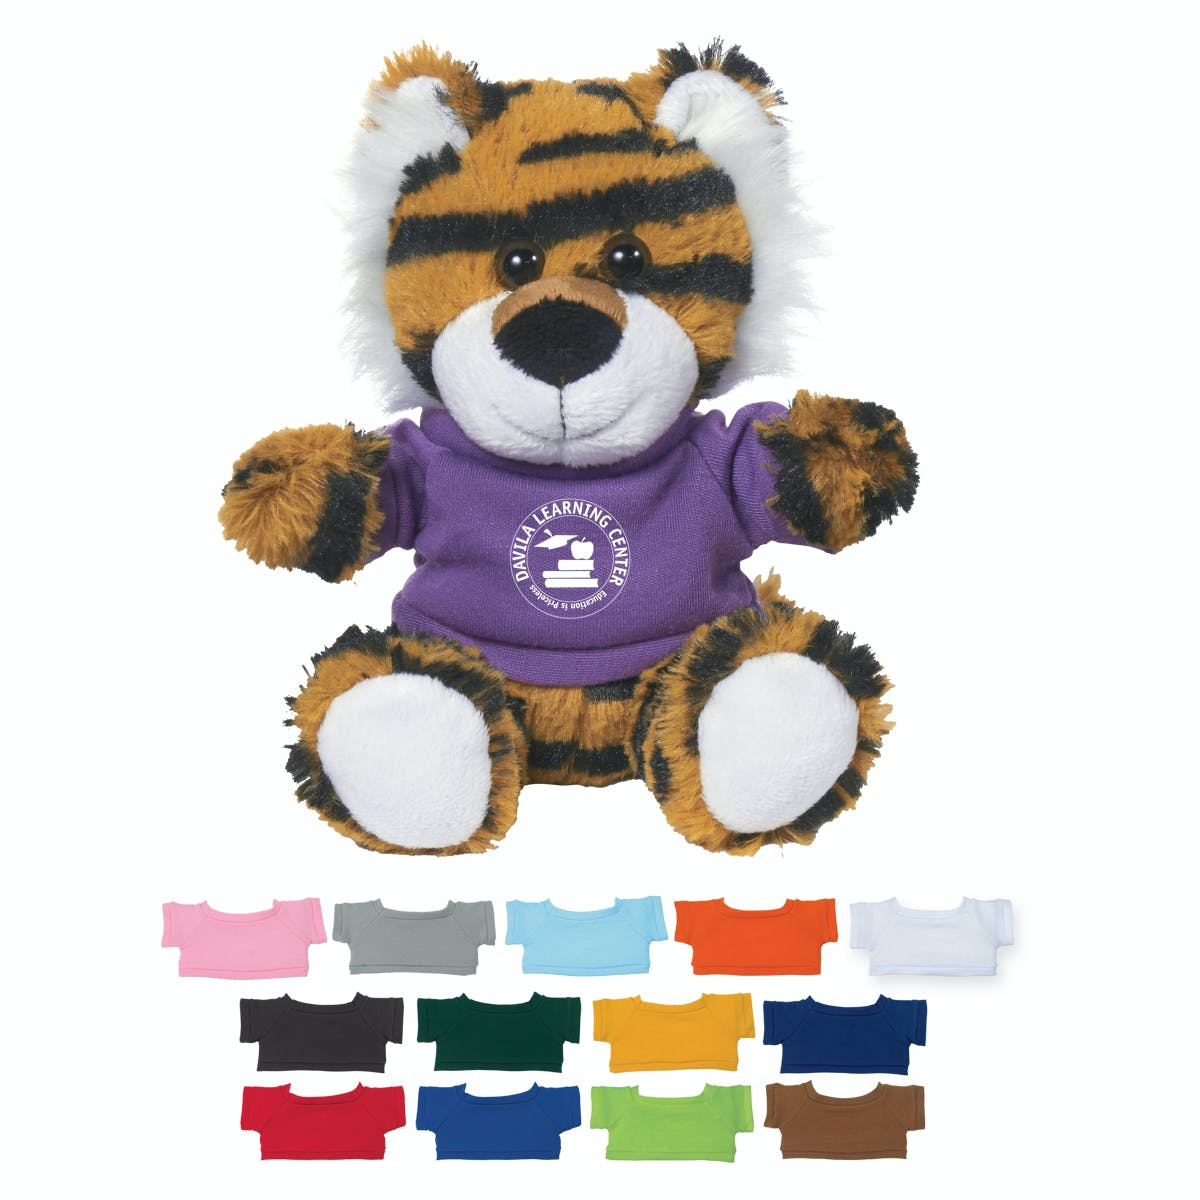 Tiger with Shirt (Item # OJIHQ-JKCXB) Stuffed toy sold by InkEasy